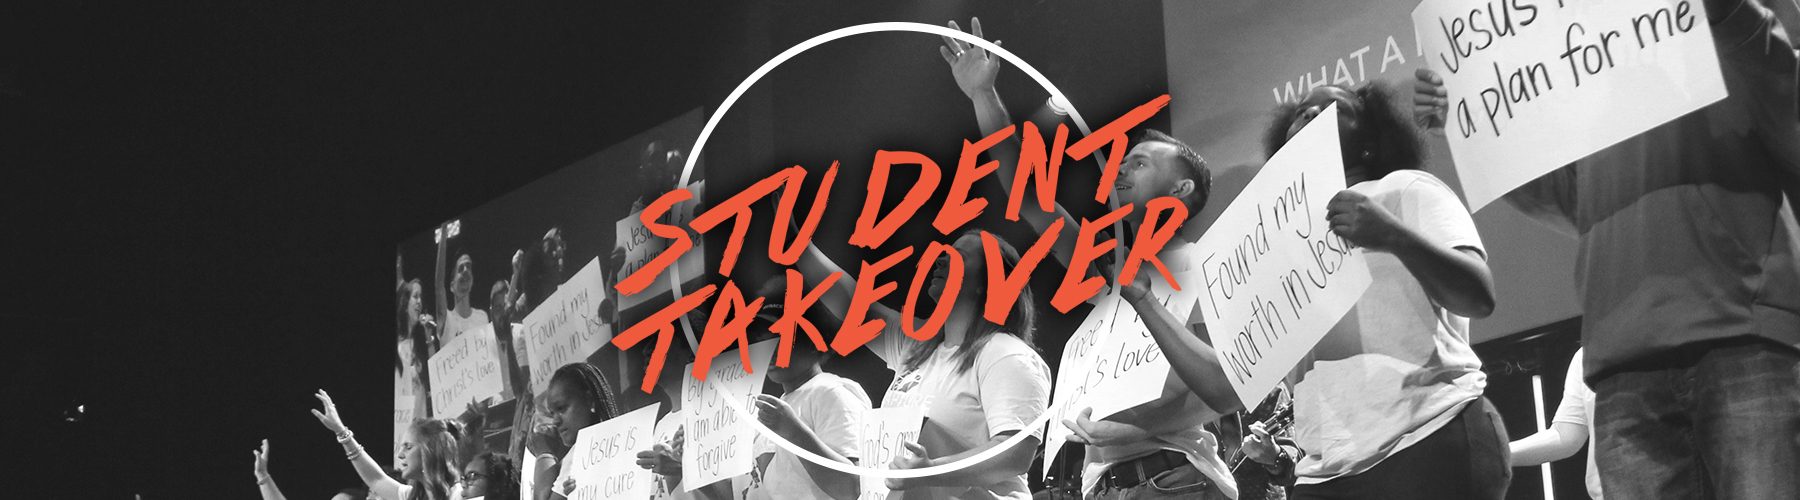 Student Takeover (2017)